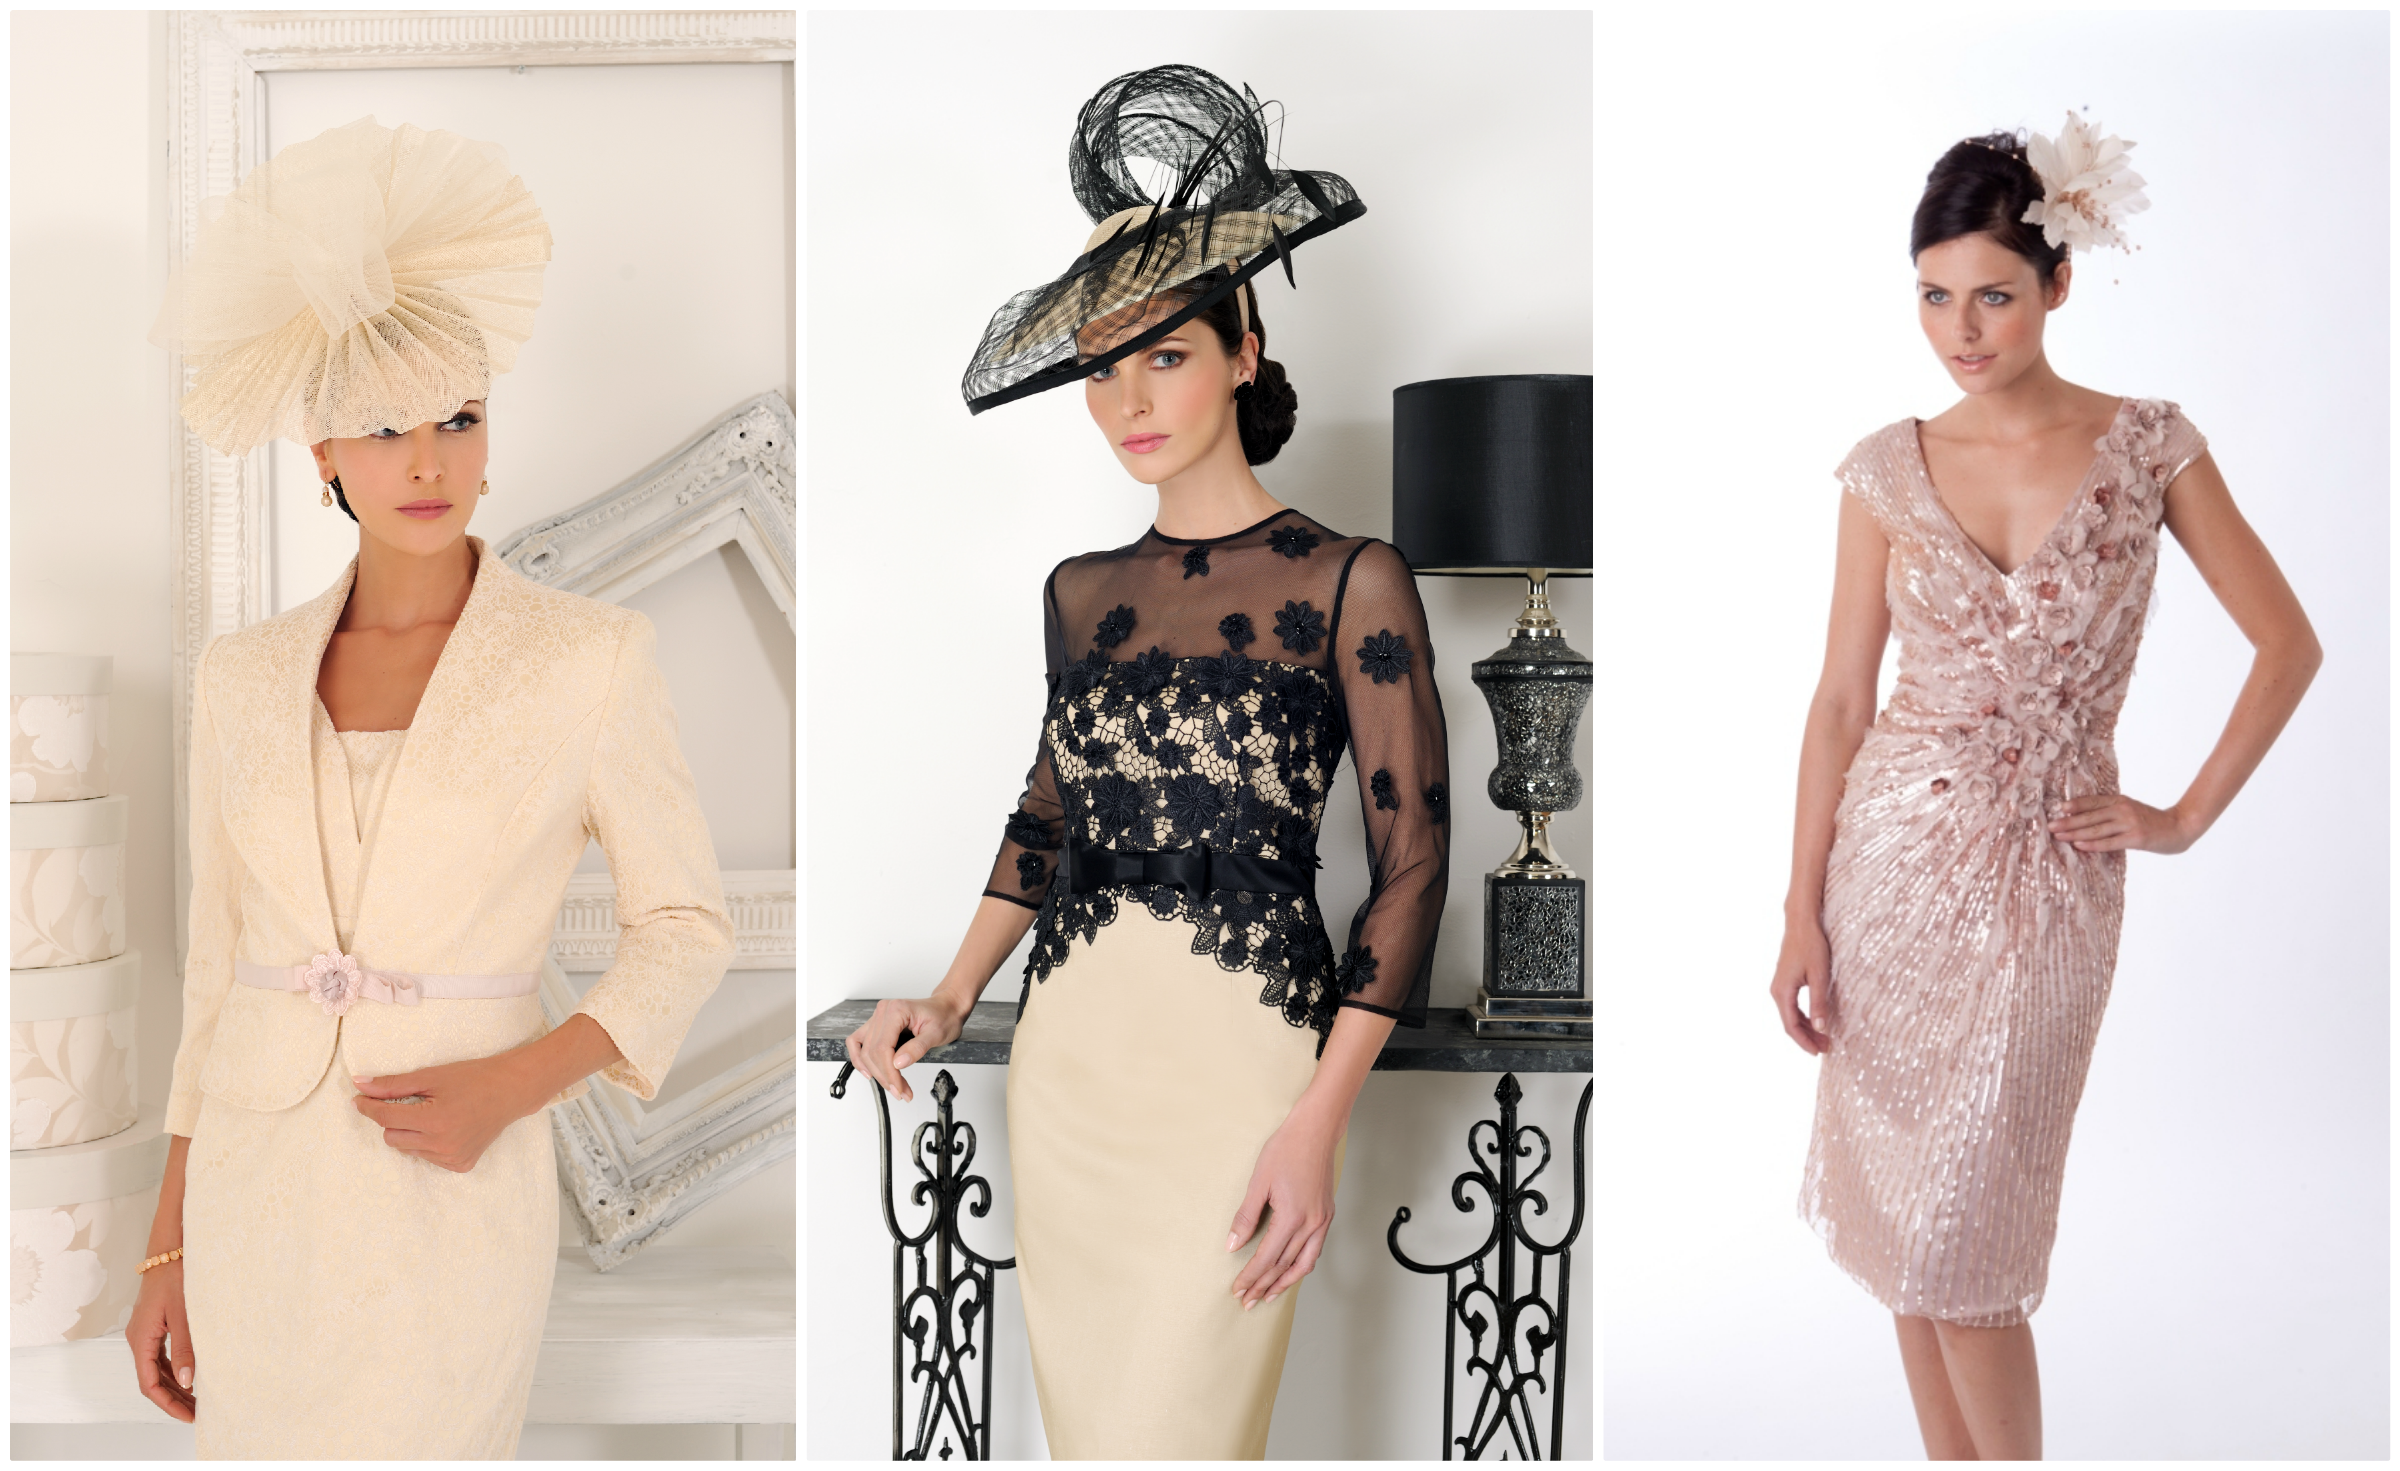 occasion wear show-stopping one off pieces will be available from designers including:  bernshaw, jill harvey, dress chmvebx